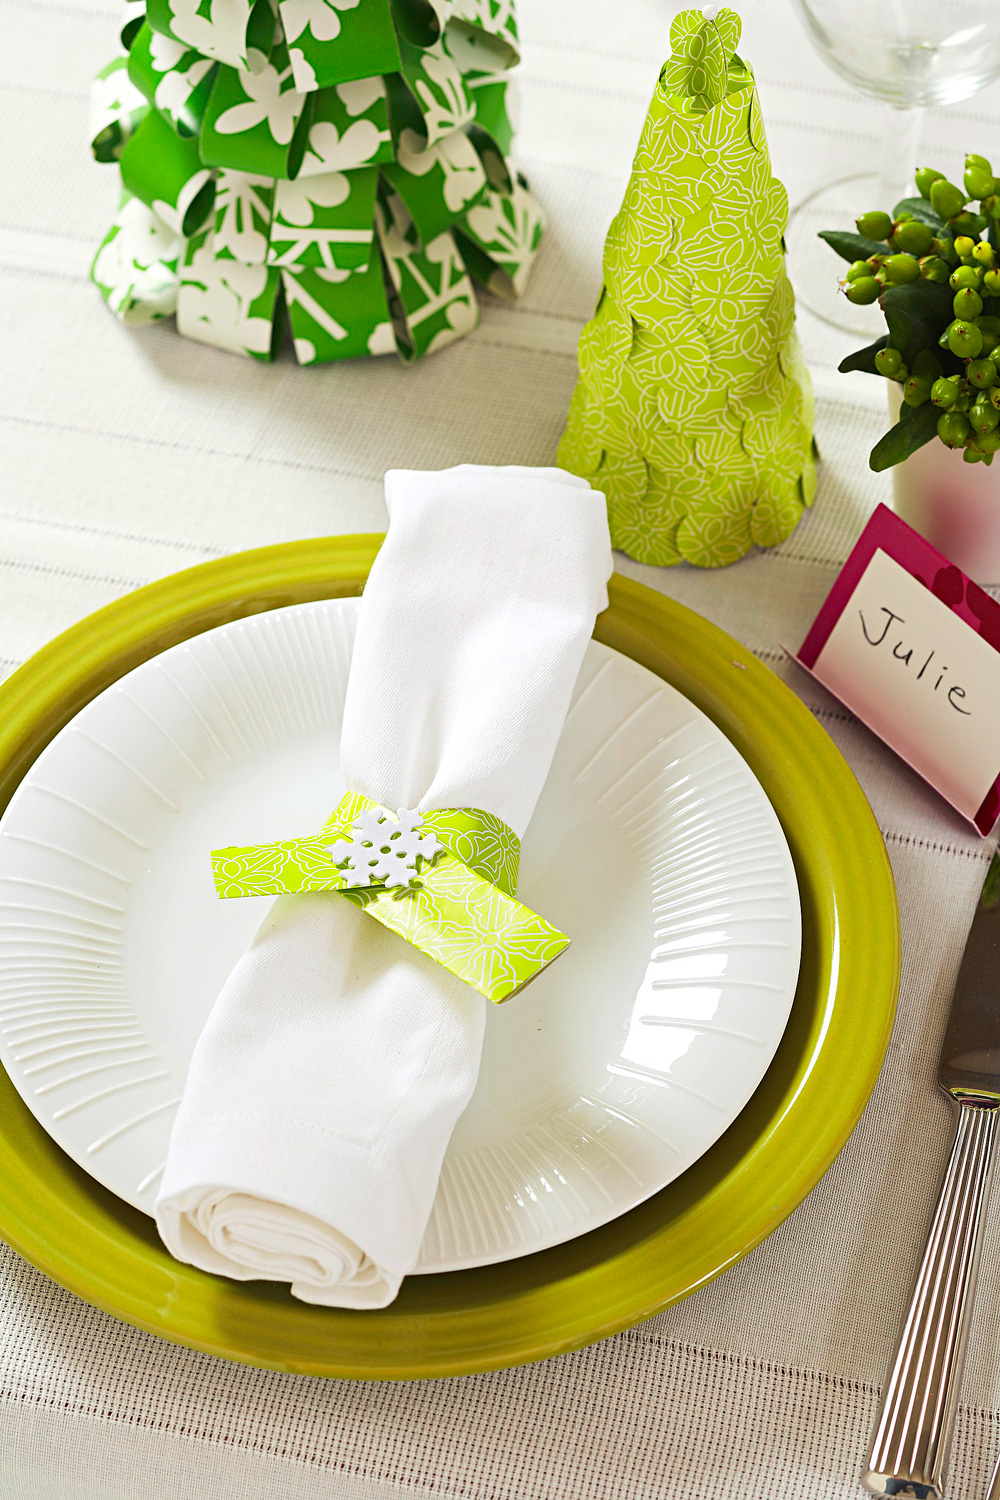 Wrapping paper accents